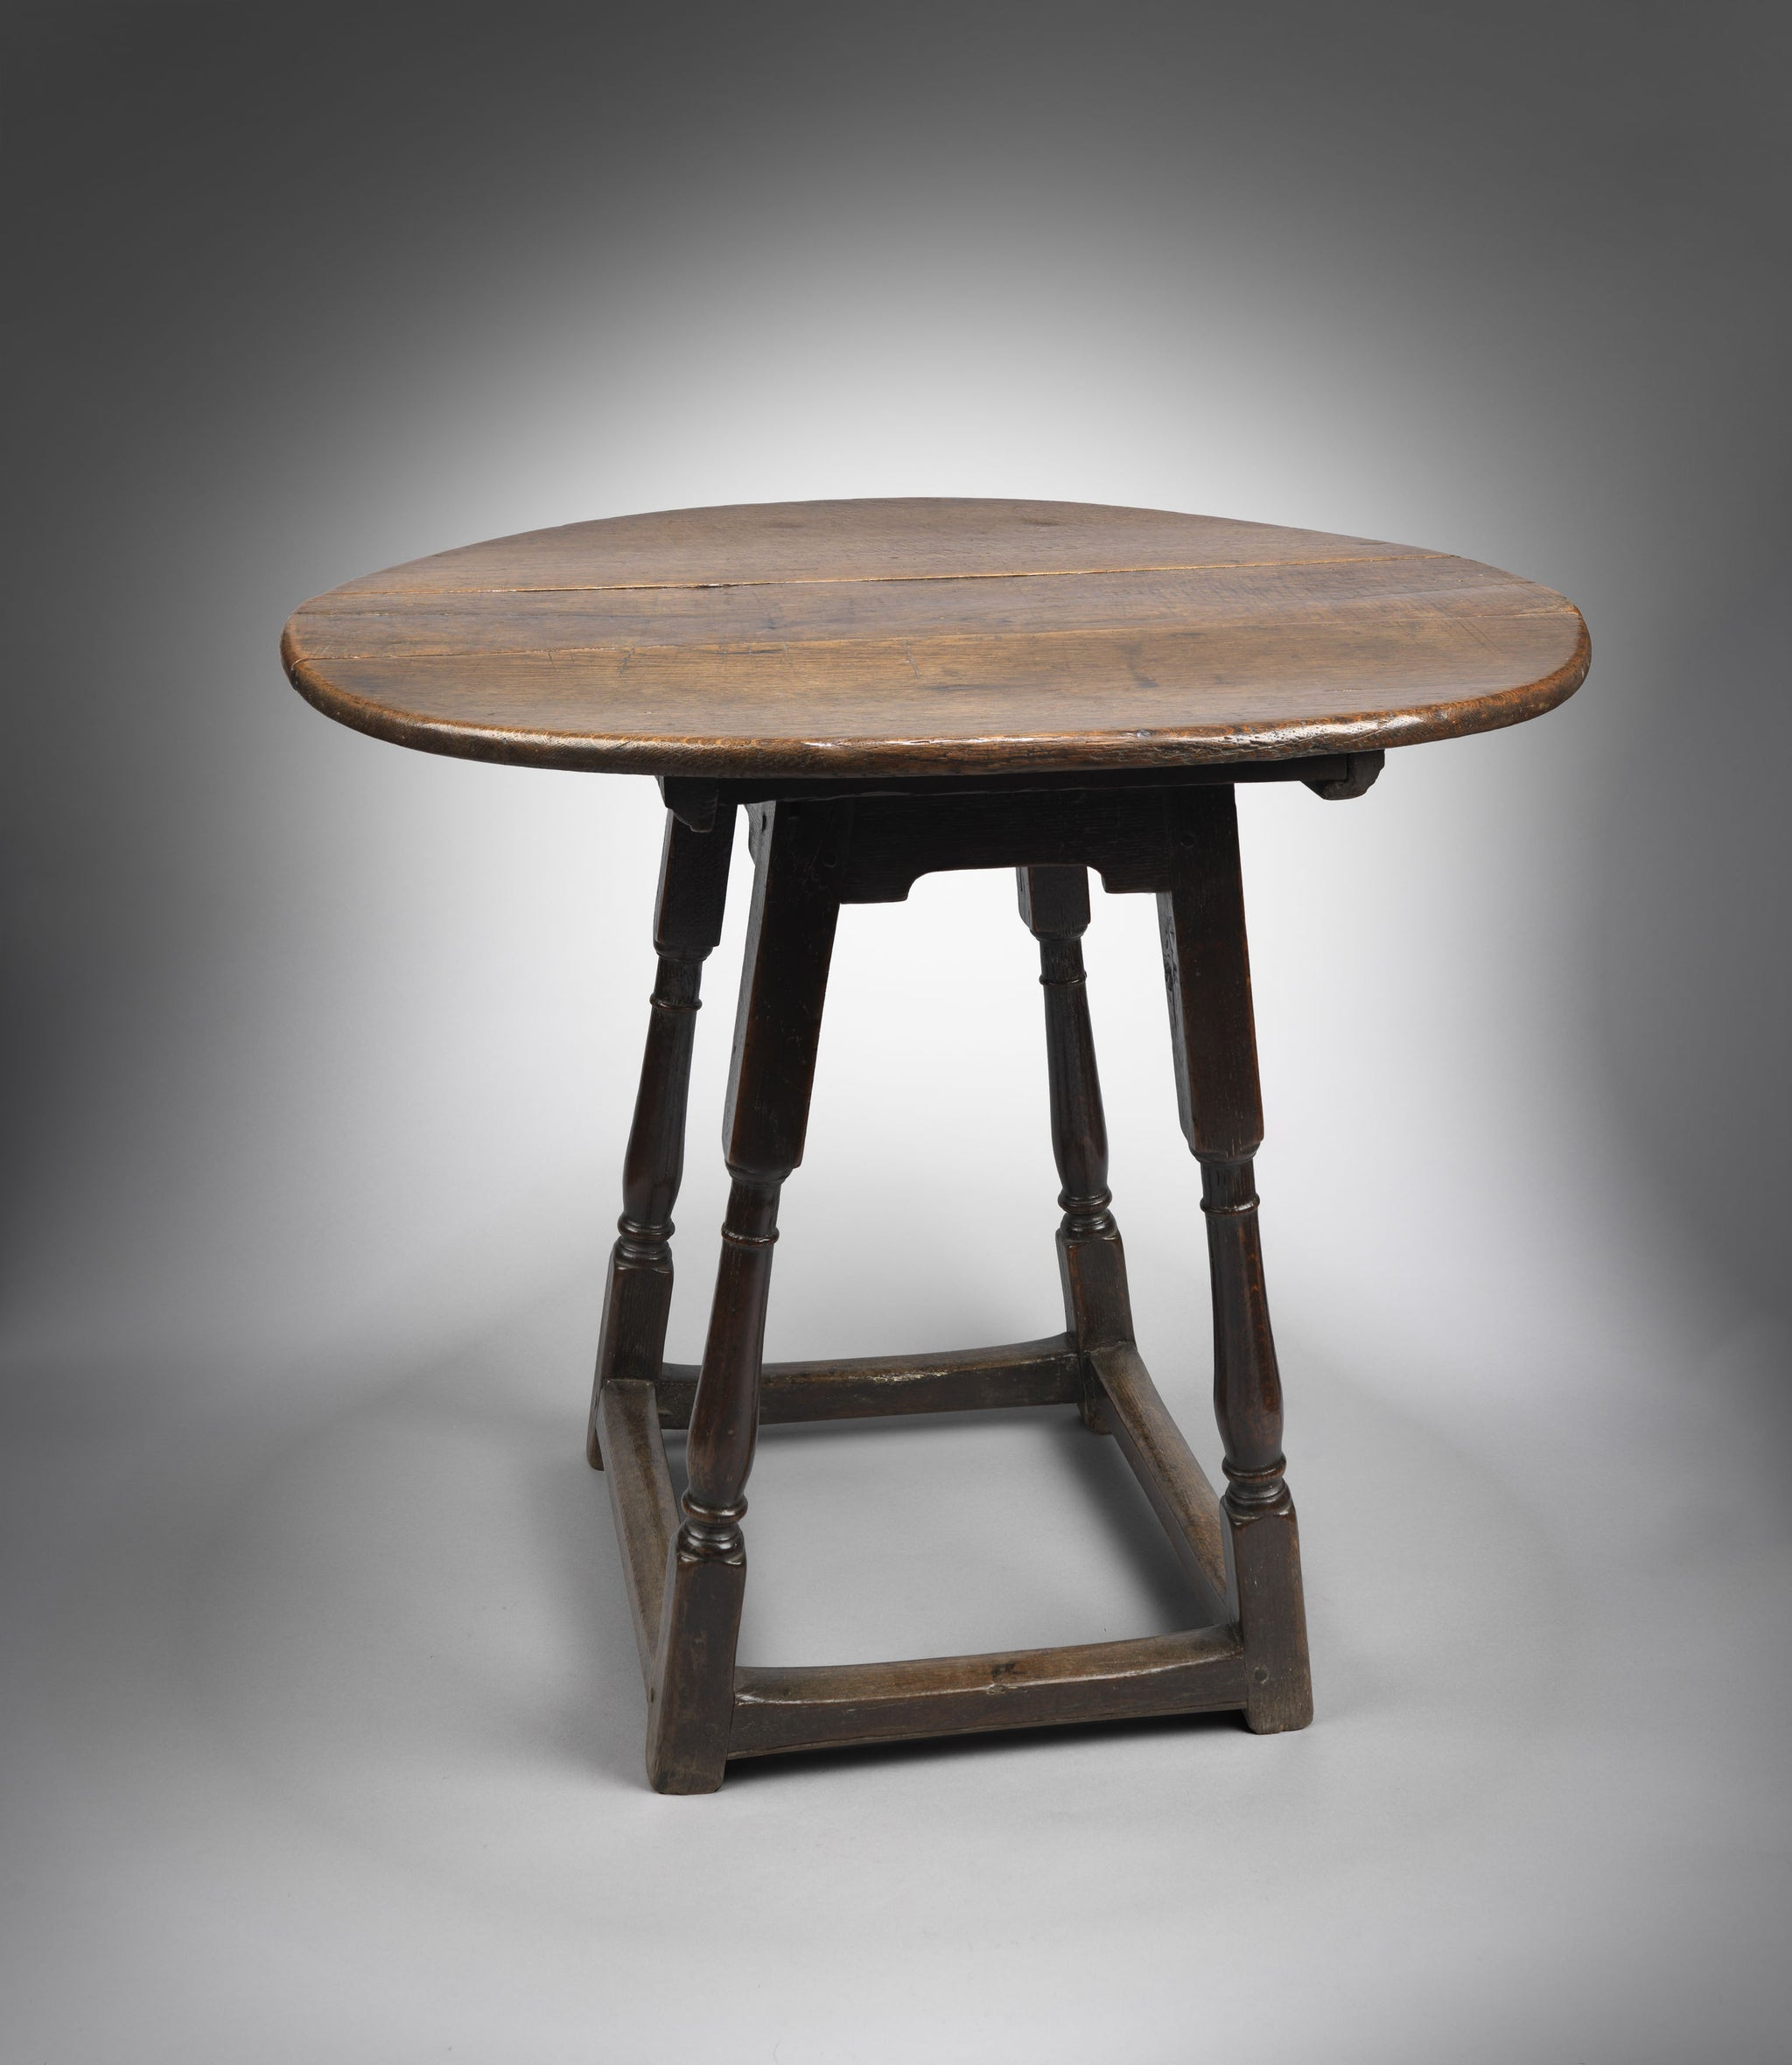 Rare William and Mary Joint Stool